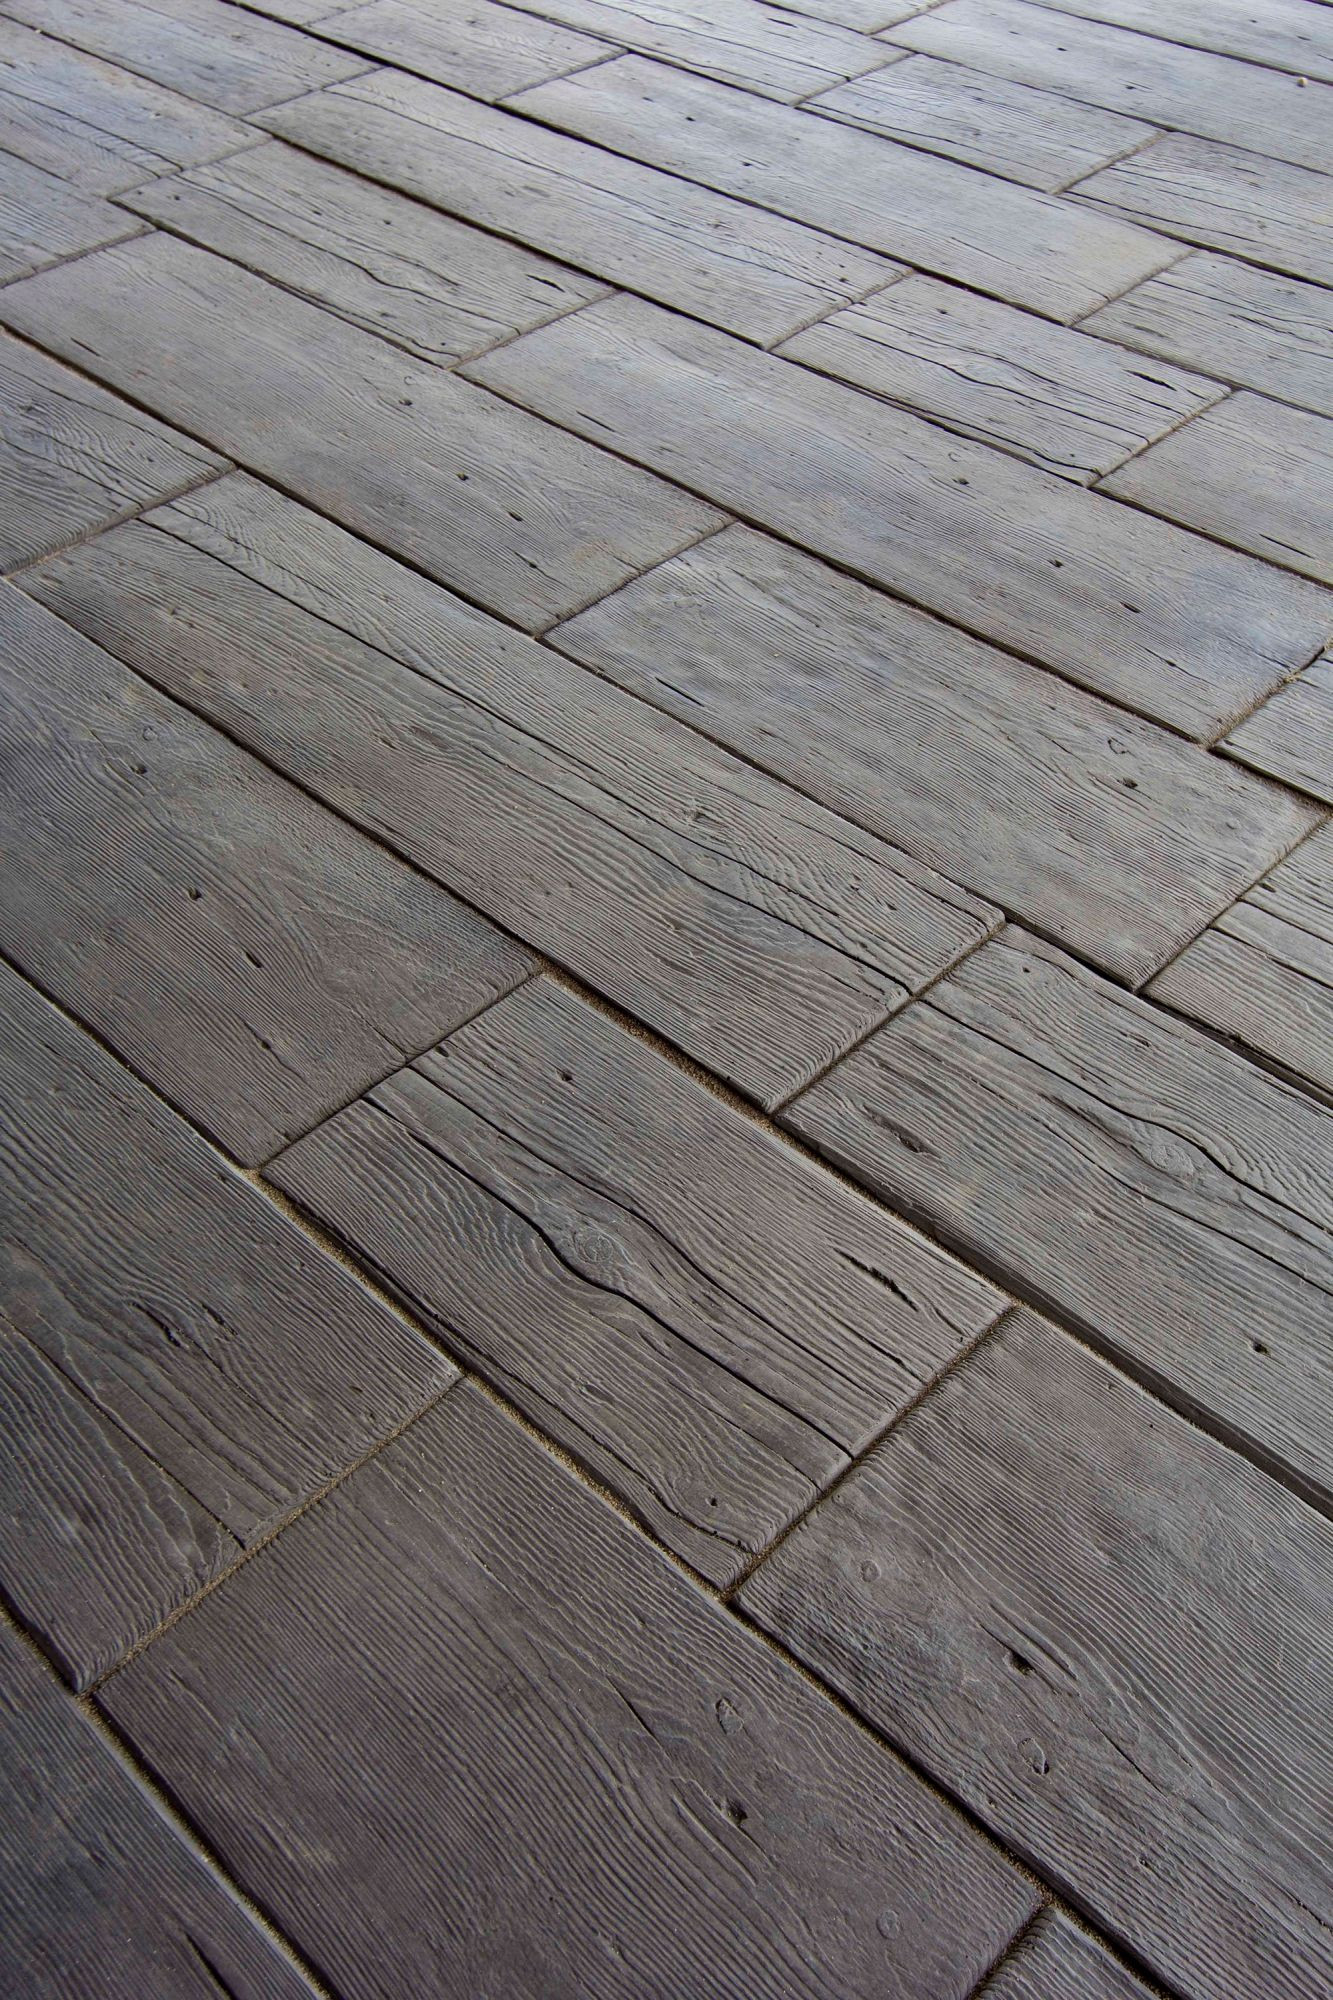 installing click lock hardwood flooring on concrete of rustic wood nope 2 thick concrete pavers barn plank landscape throughout nope 2 thick concrete pavers barn plank landscape tile by silver creek stoneworks rochester mn ideal for outdoor paths decks etc